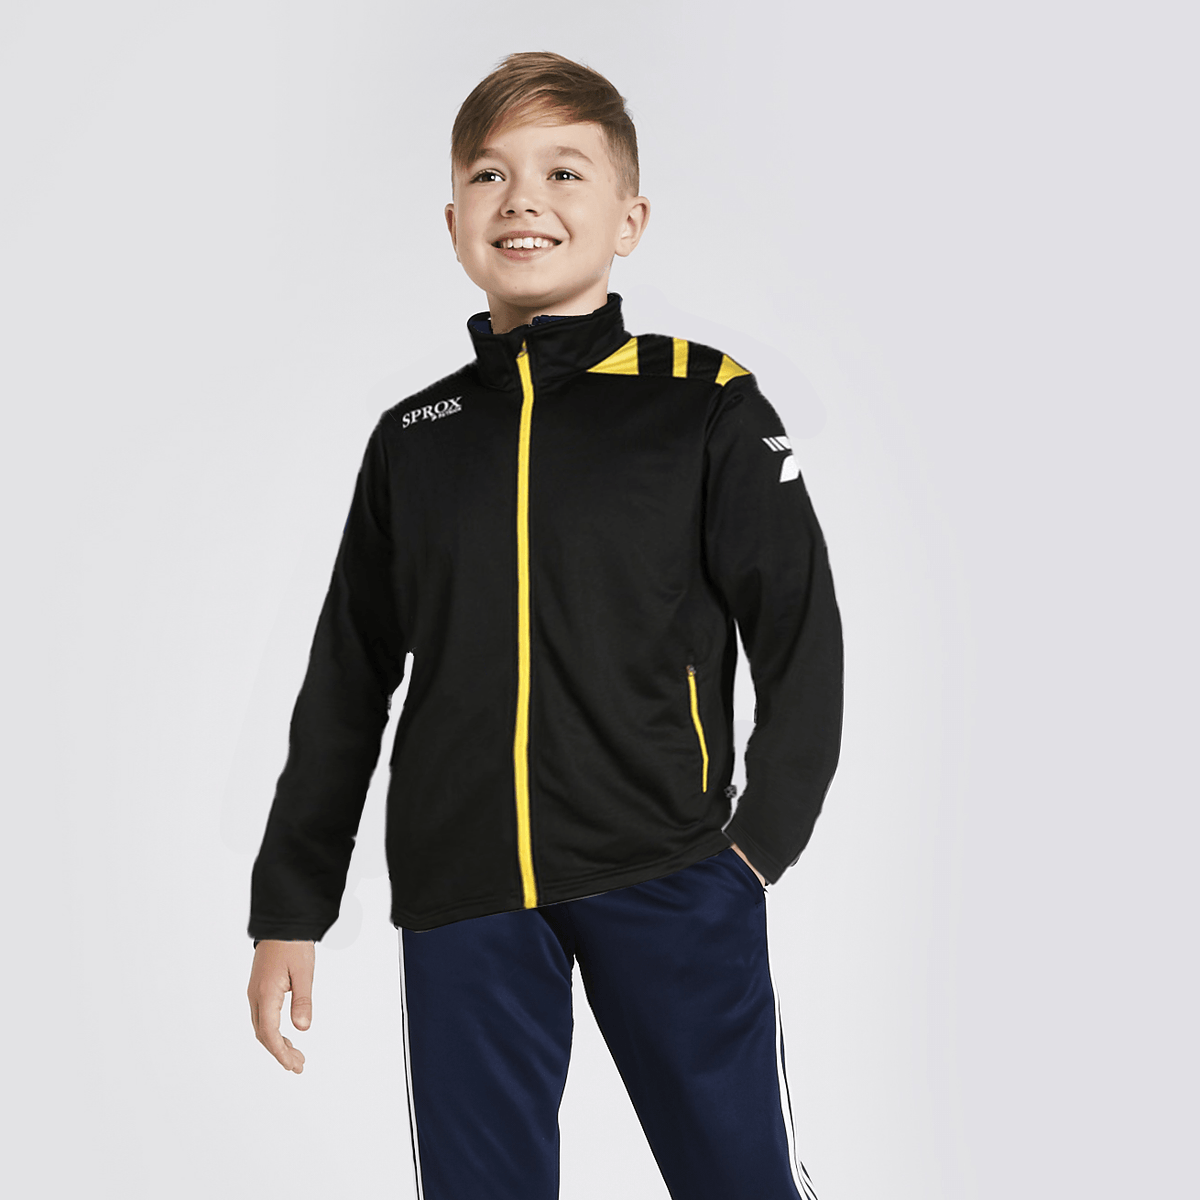 PTRK Boy's Full Zip Sportswears Poly Jacket Boy's Jacket SRK Black Yellow 4XS